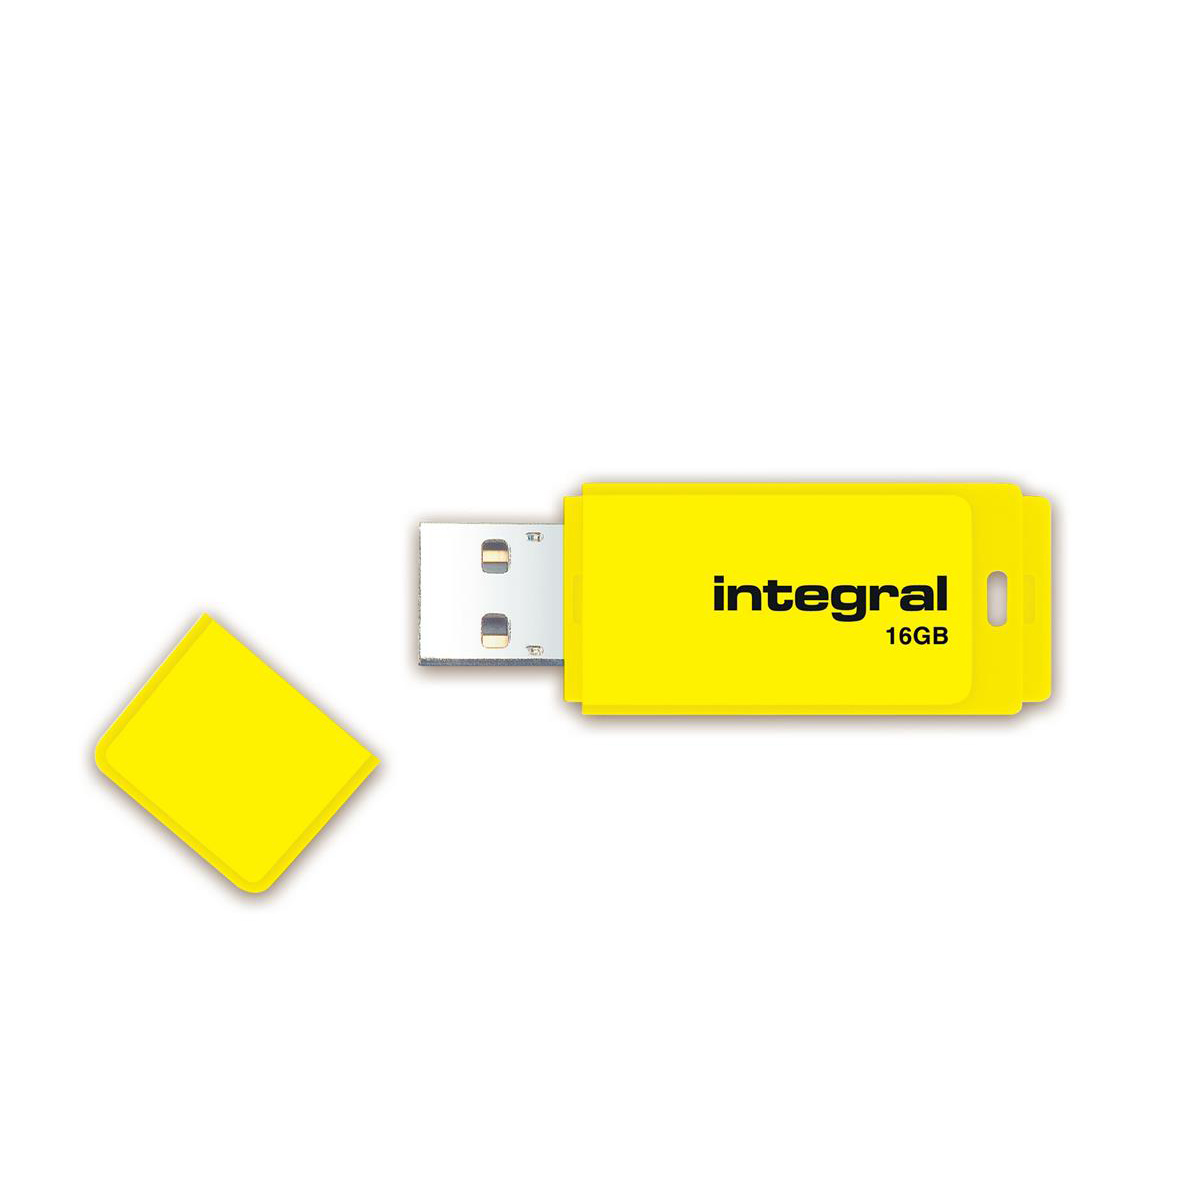 Memory Sticks Integral Neon USB Drive 2.0 Capacity 16GB Yellow Ref INFD16GBNEONYL